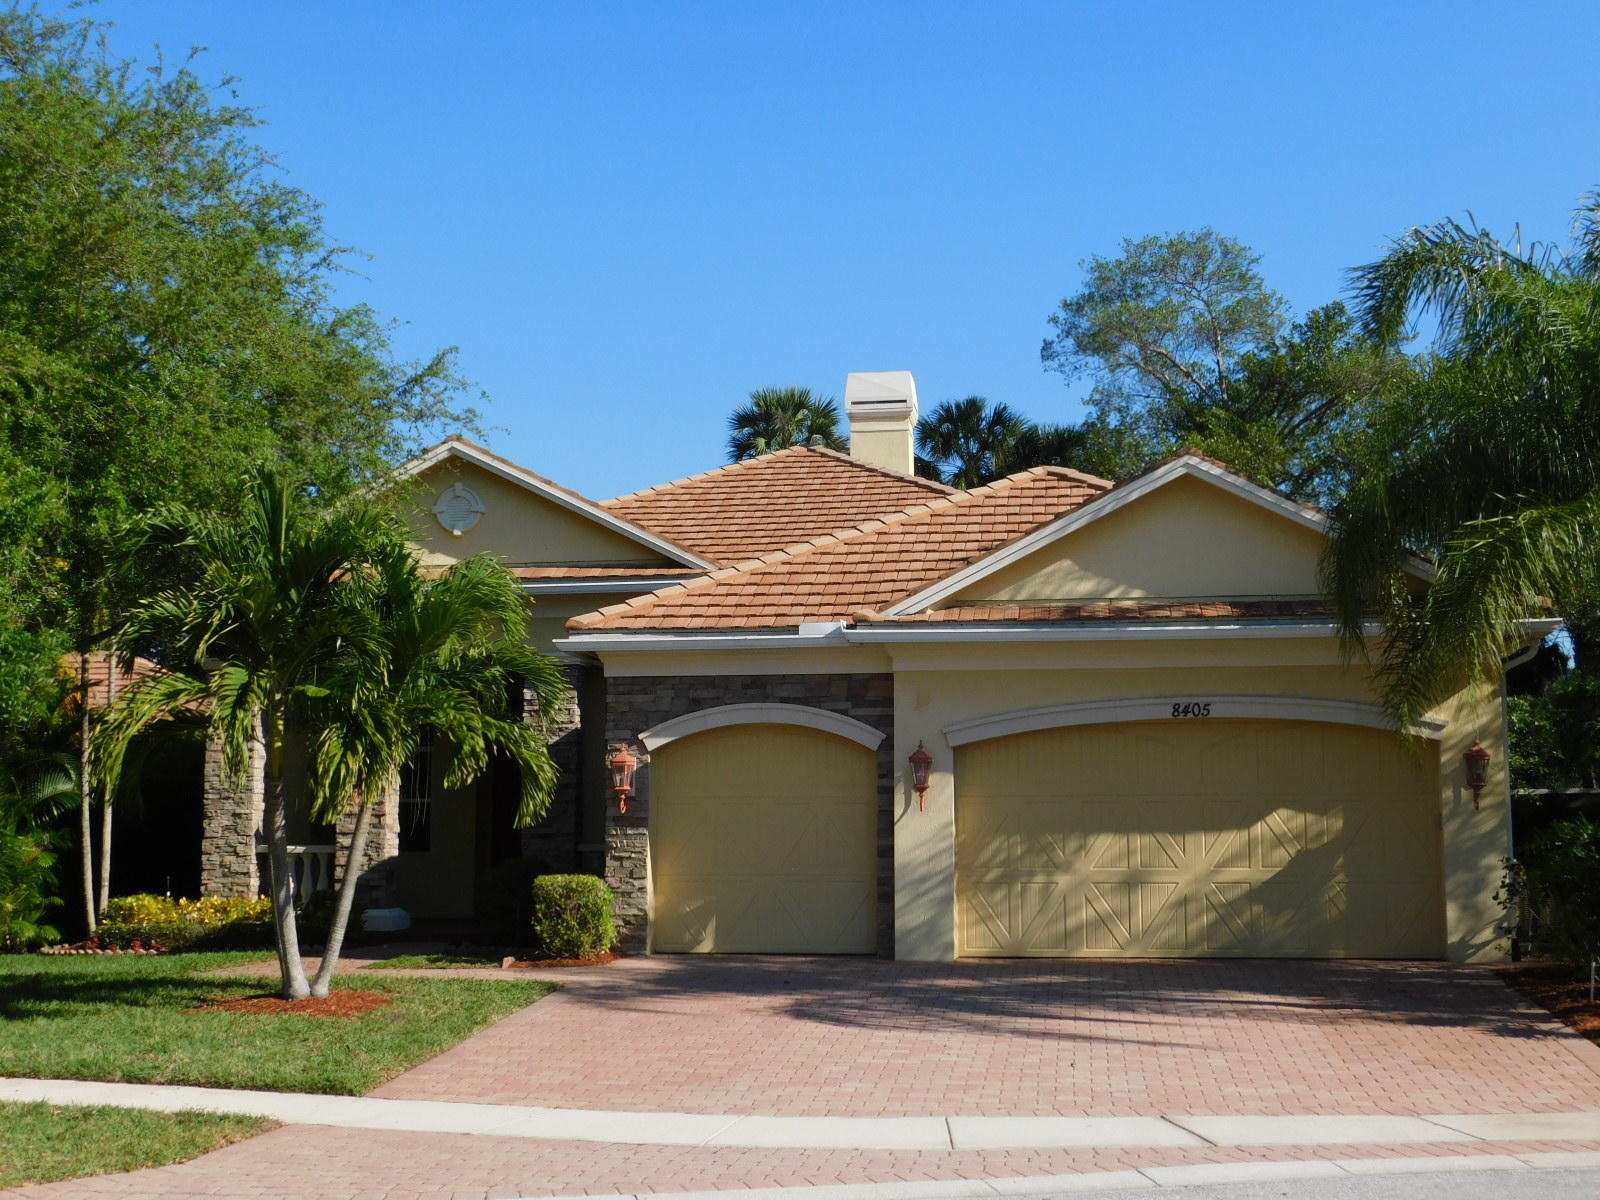 Photo of 8405 Butler Greenwood Drive, Royal Palm Beach, FL 33411